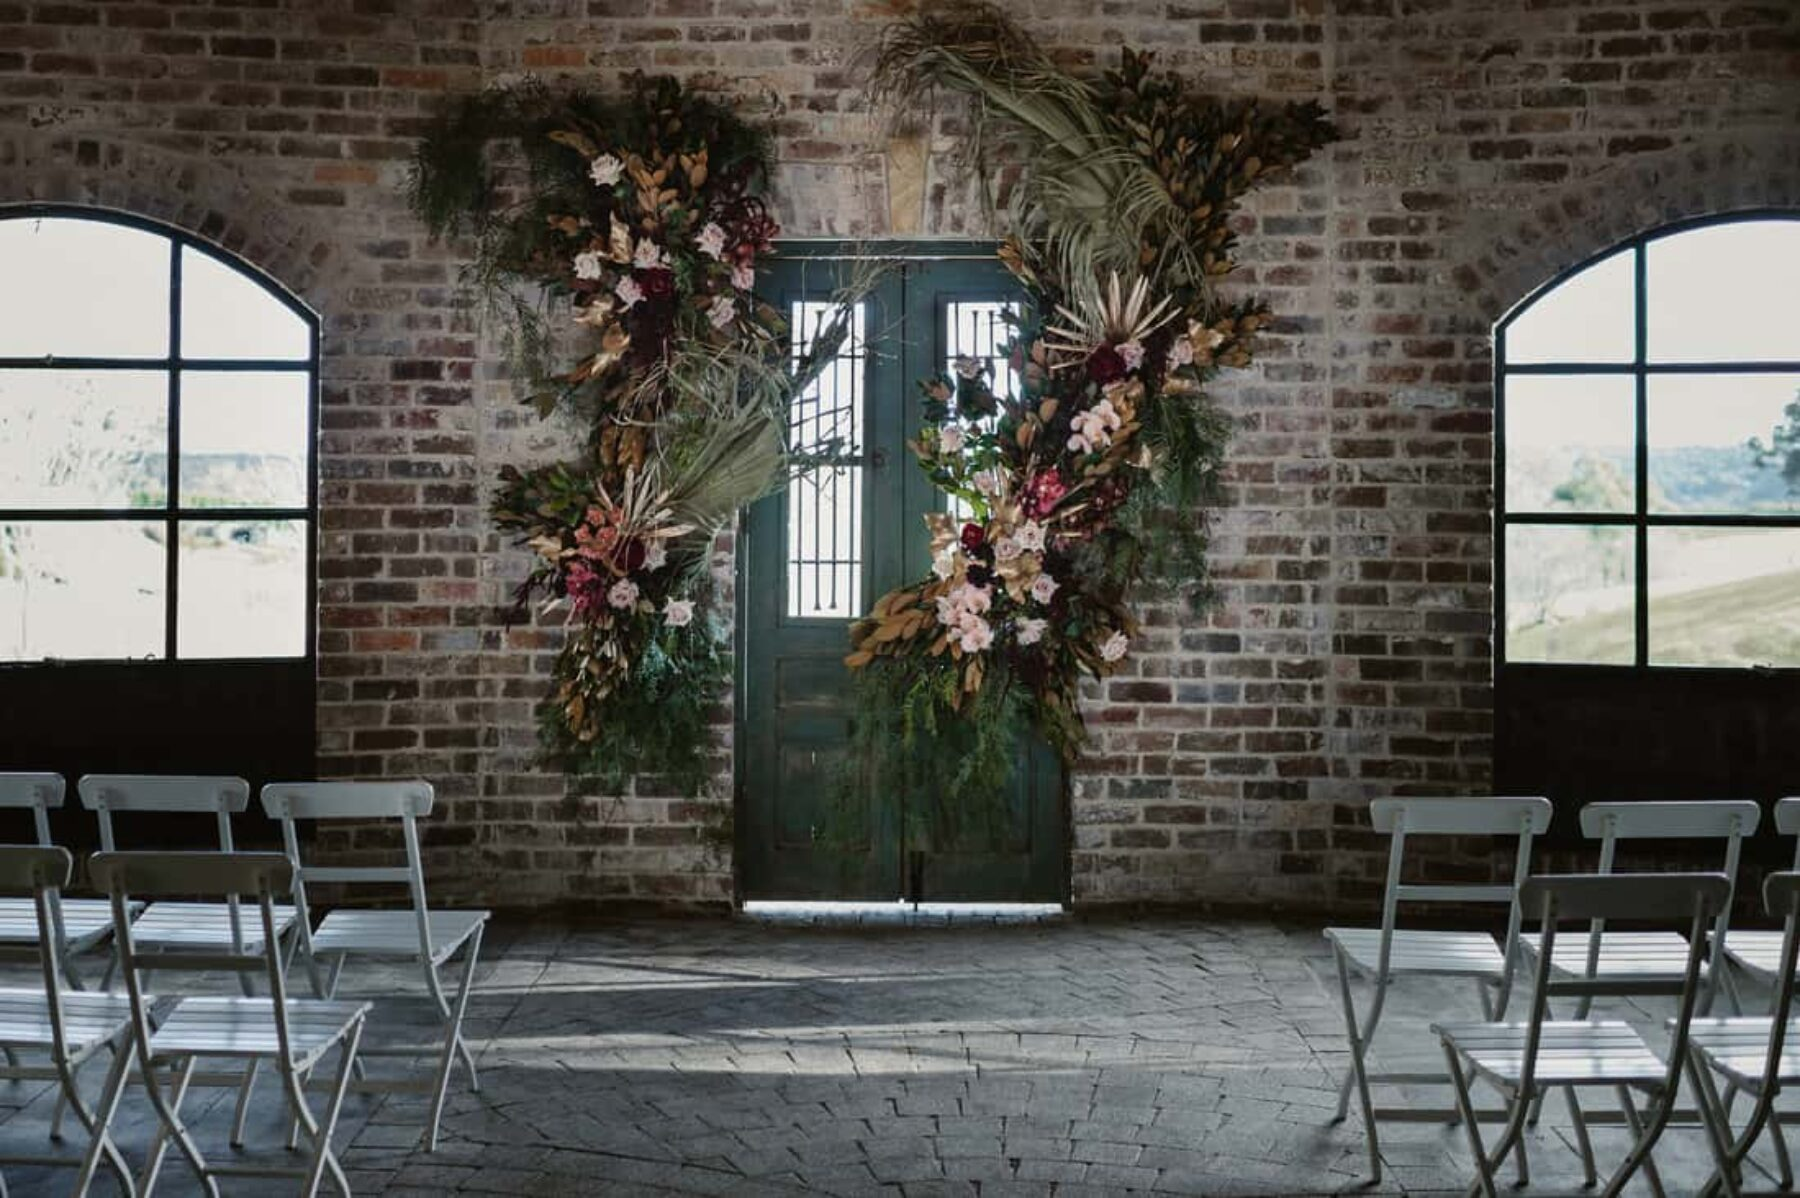 exposed brick wall with floral wedding backdrop